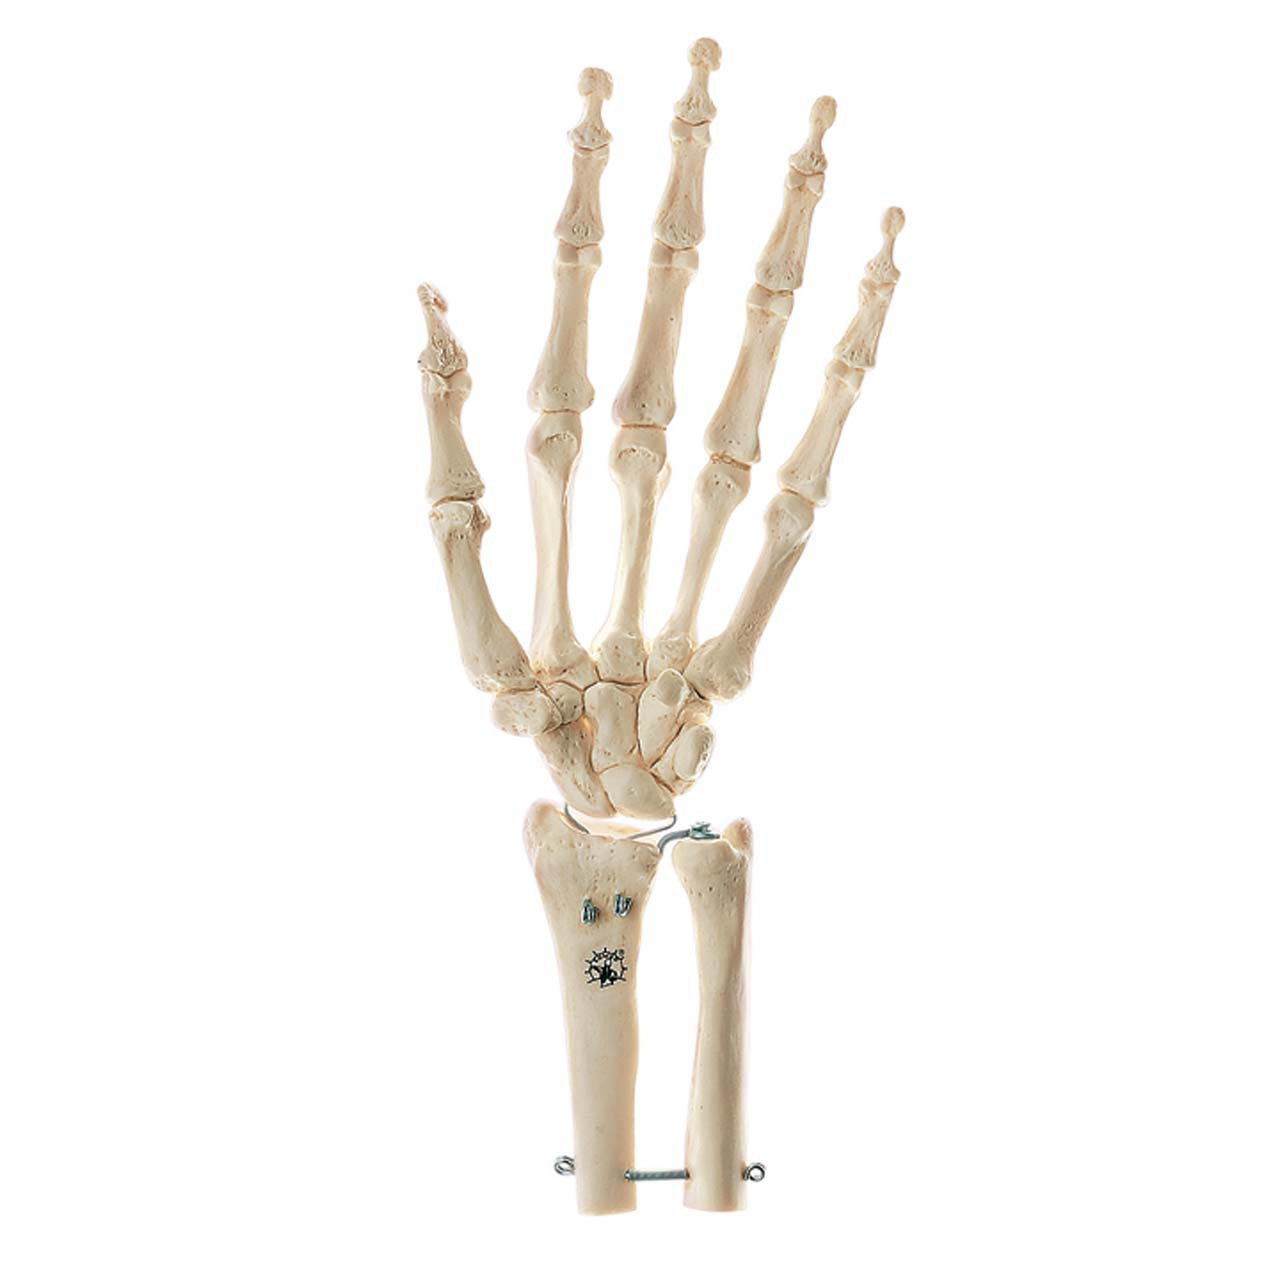 Skeleton of Hand with Base of Forearm